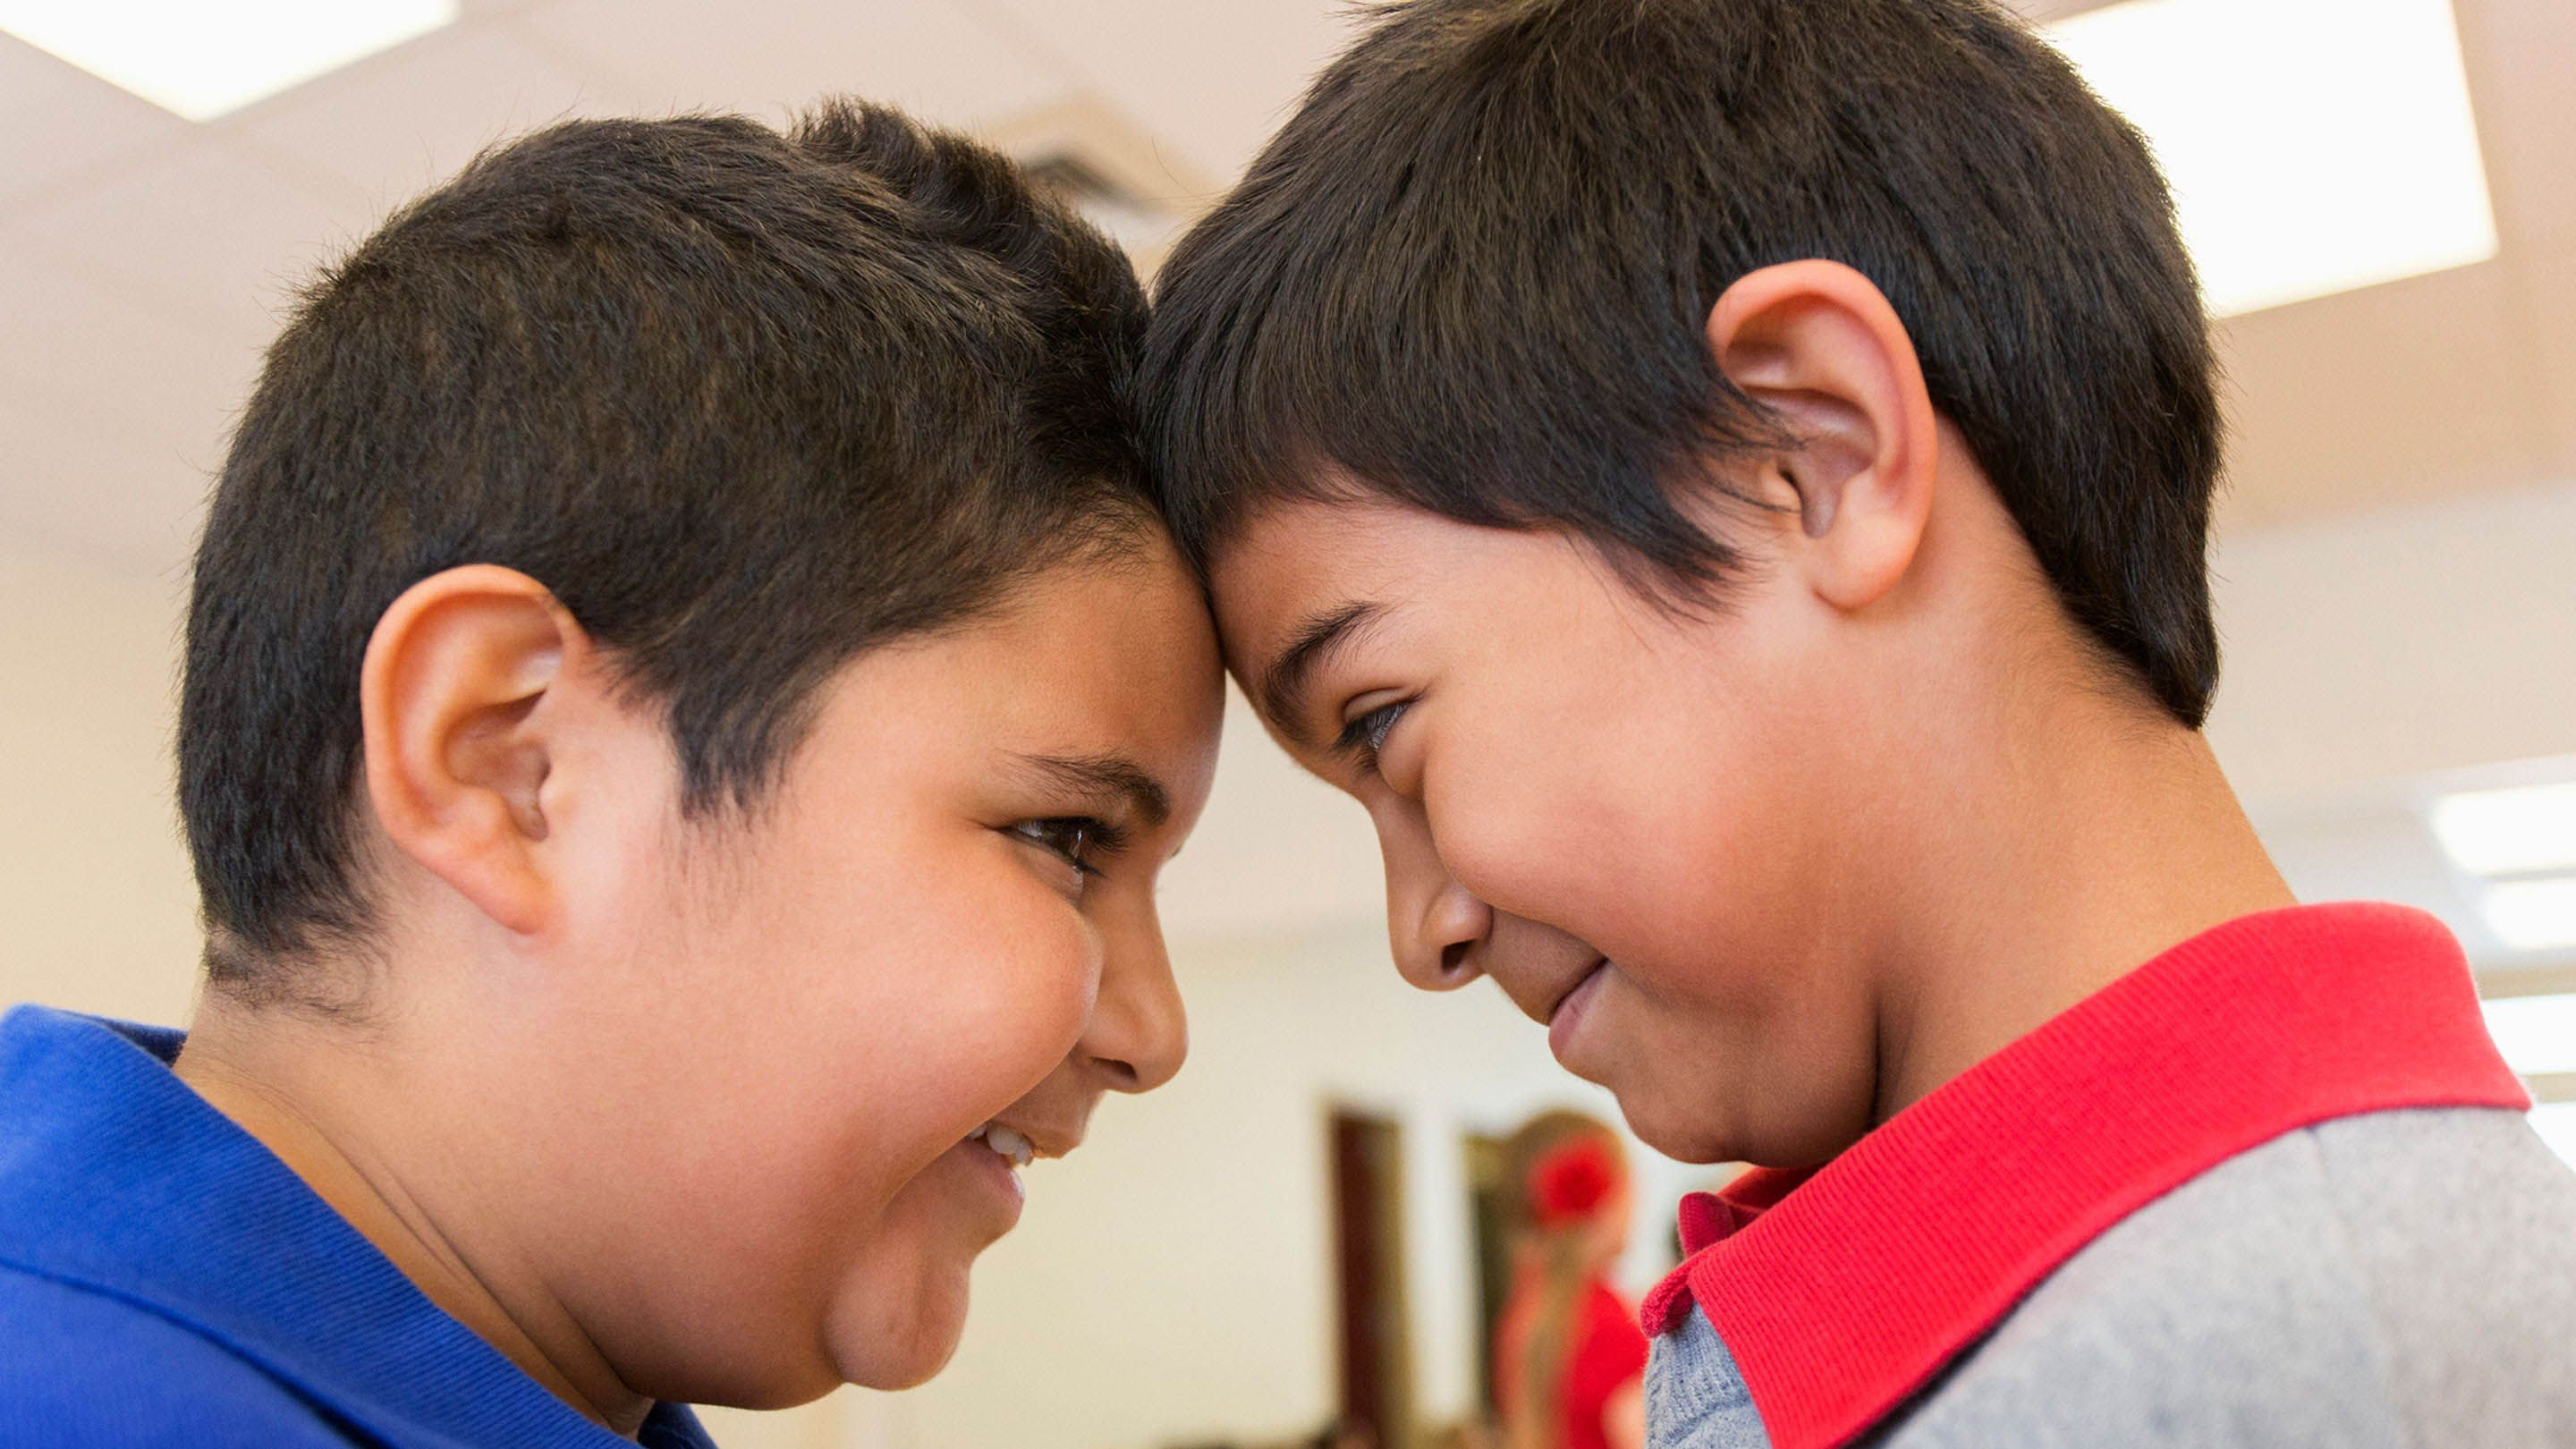 Two boys look into each other's eyes, a technique that builds empathy.